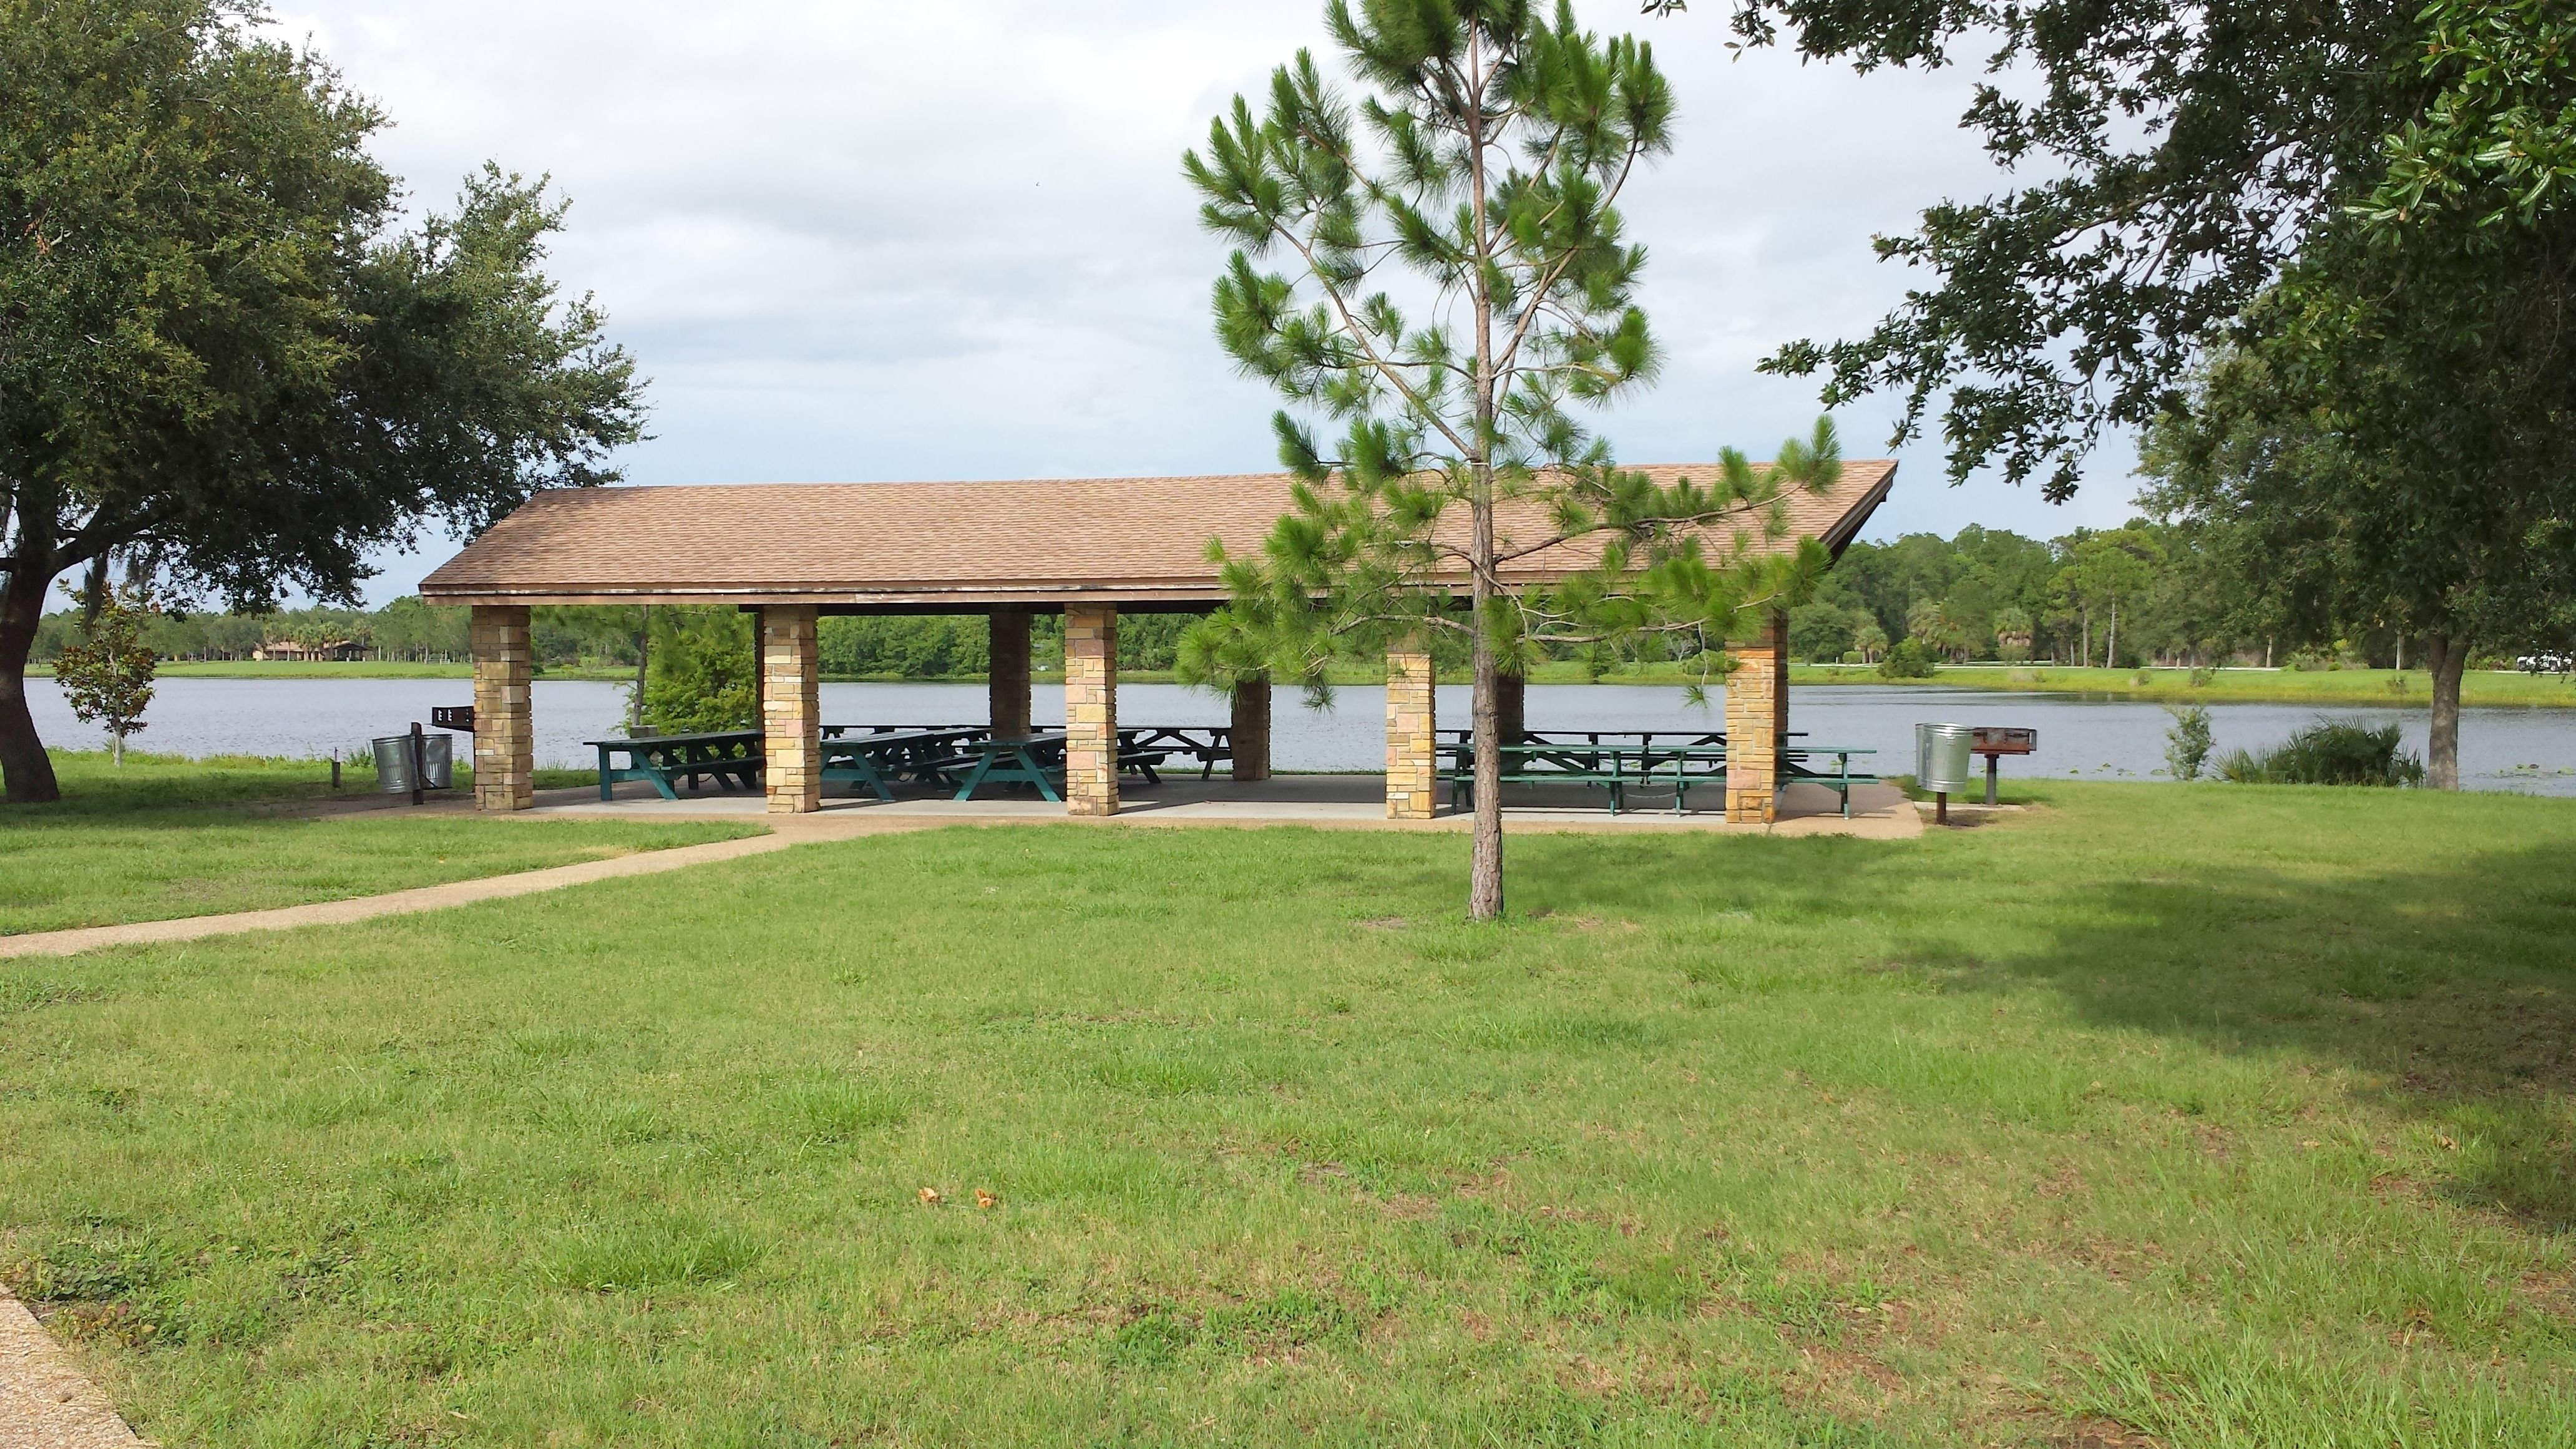 Covered Park Shelters : Picnic shelter on the lake at walsingham park close to